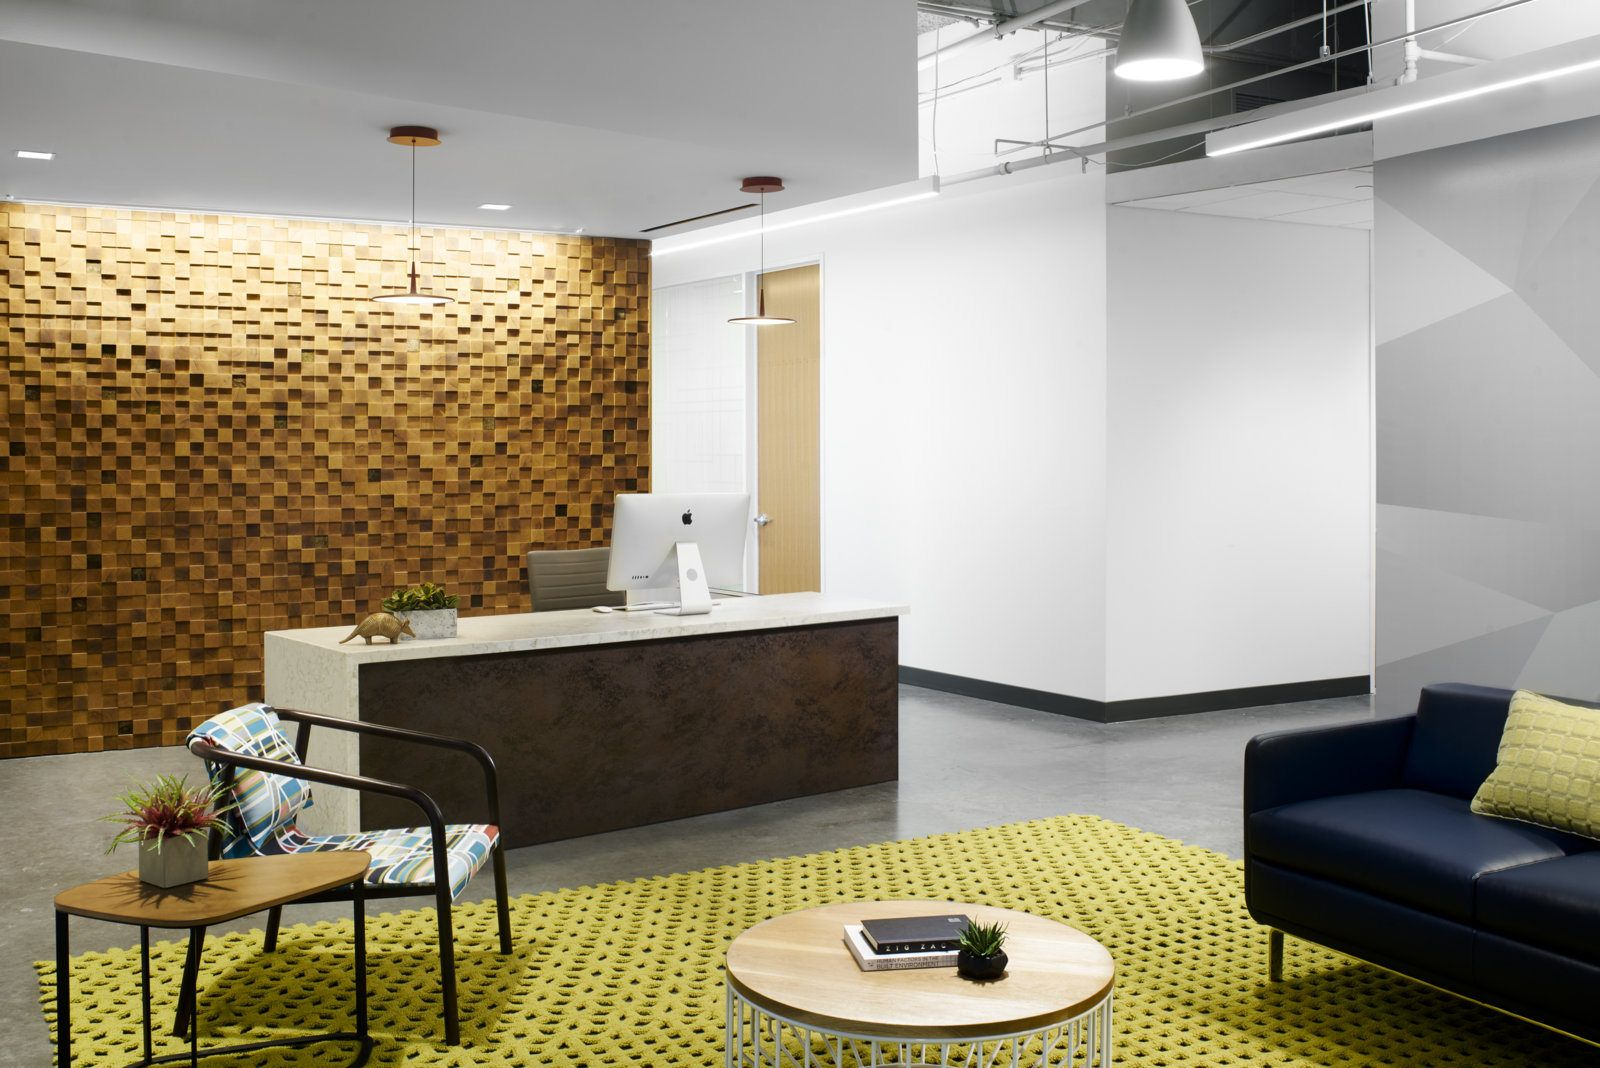 Deneys reitz office by collaboration lauckgroup designed the new offices of tech company cadence design systems located in austin